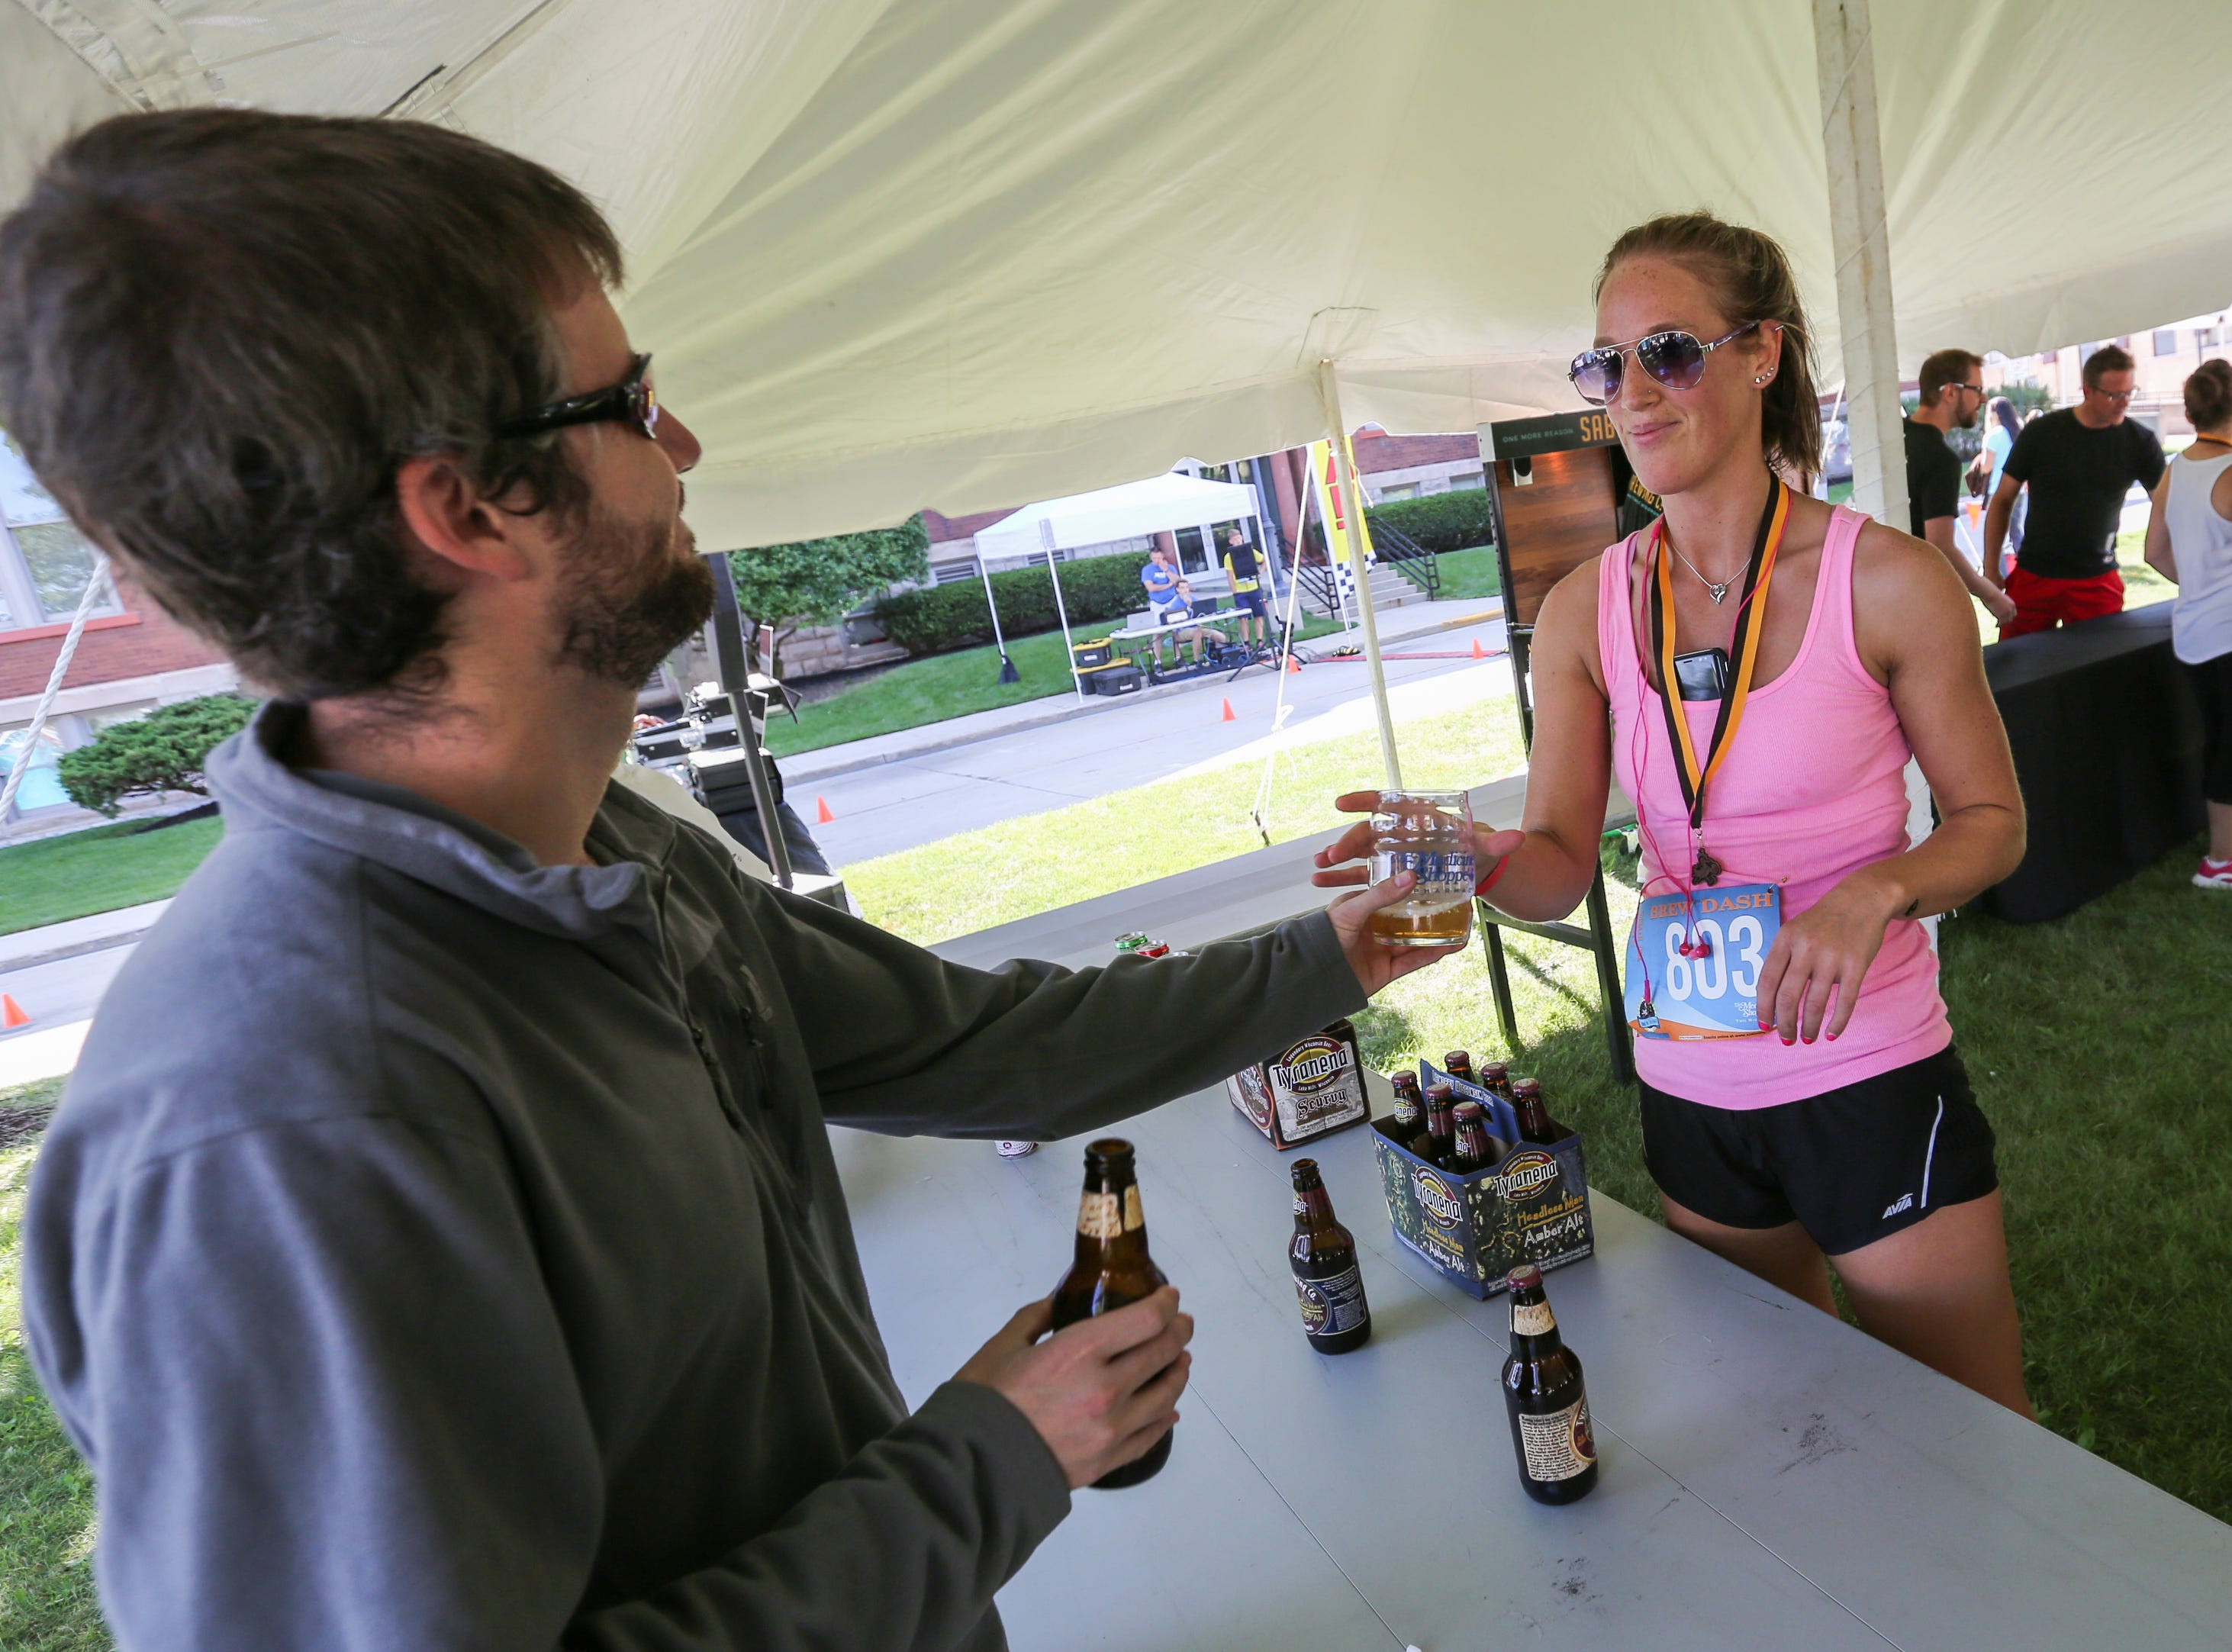 A volunteer hands Angie Boness a beer after she ran the 5K Brew Dash Saturday, July 28, 2018, in Two Rivers, Wis. Josh Clark/USA TODAY NETWORK-Wisconsin